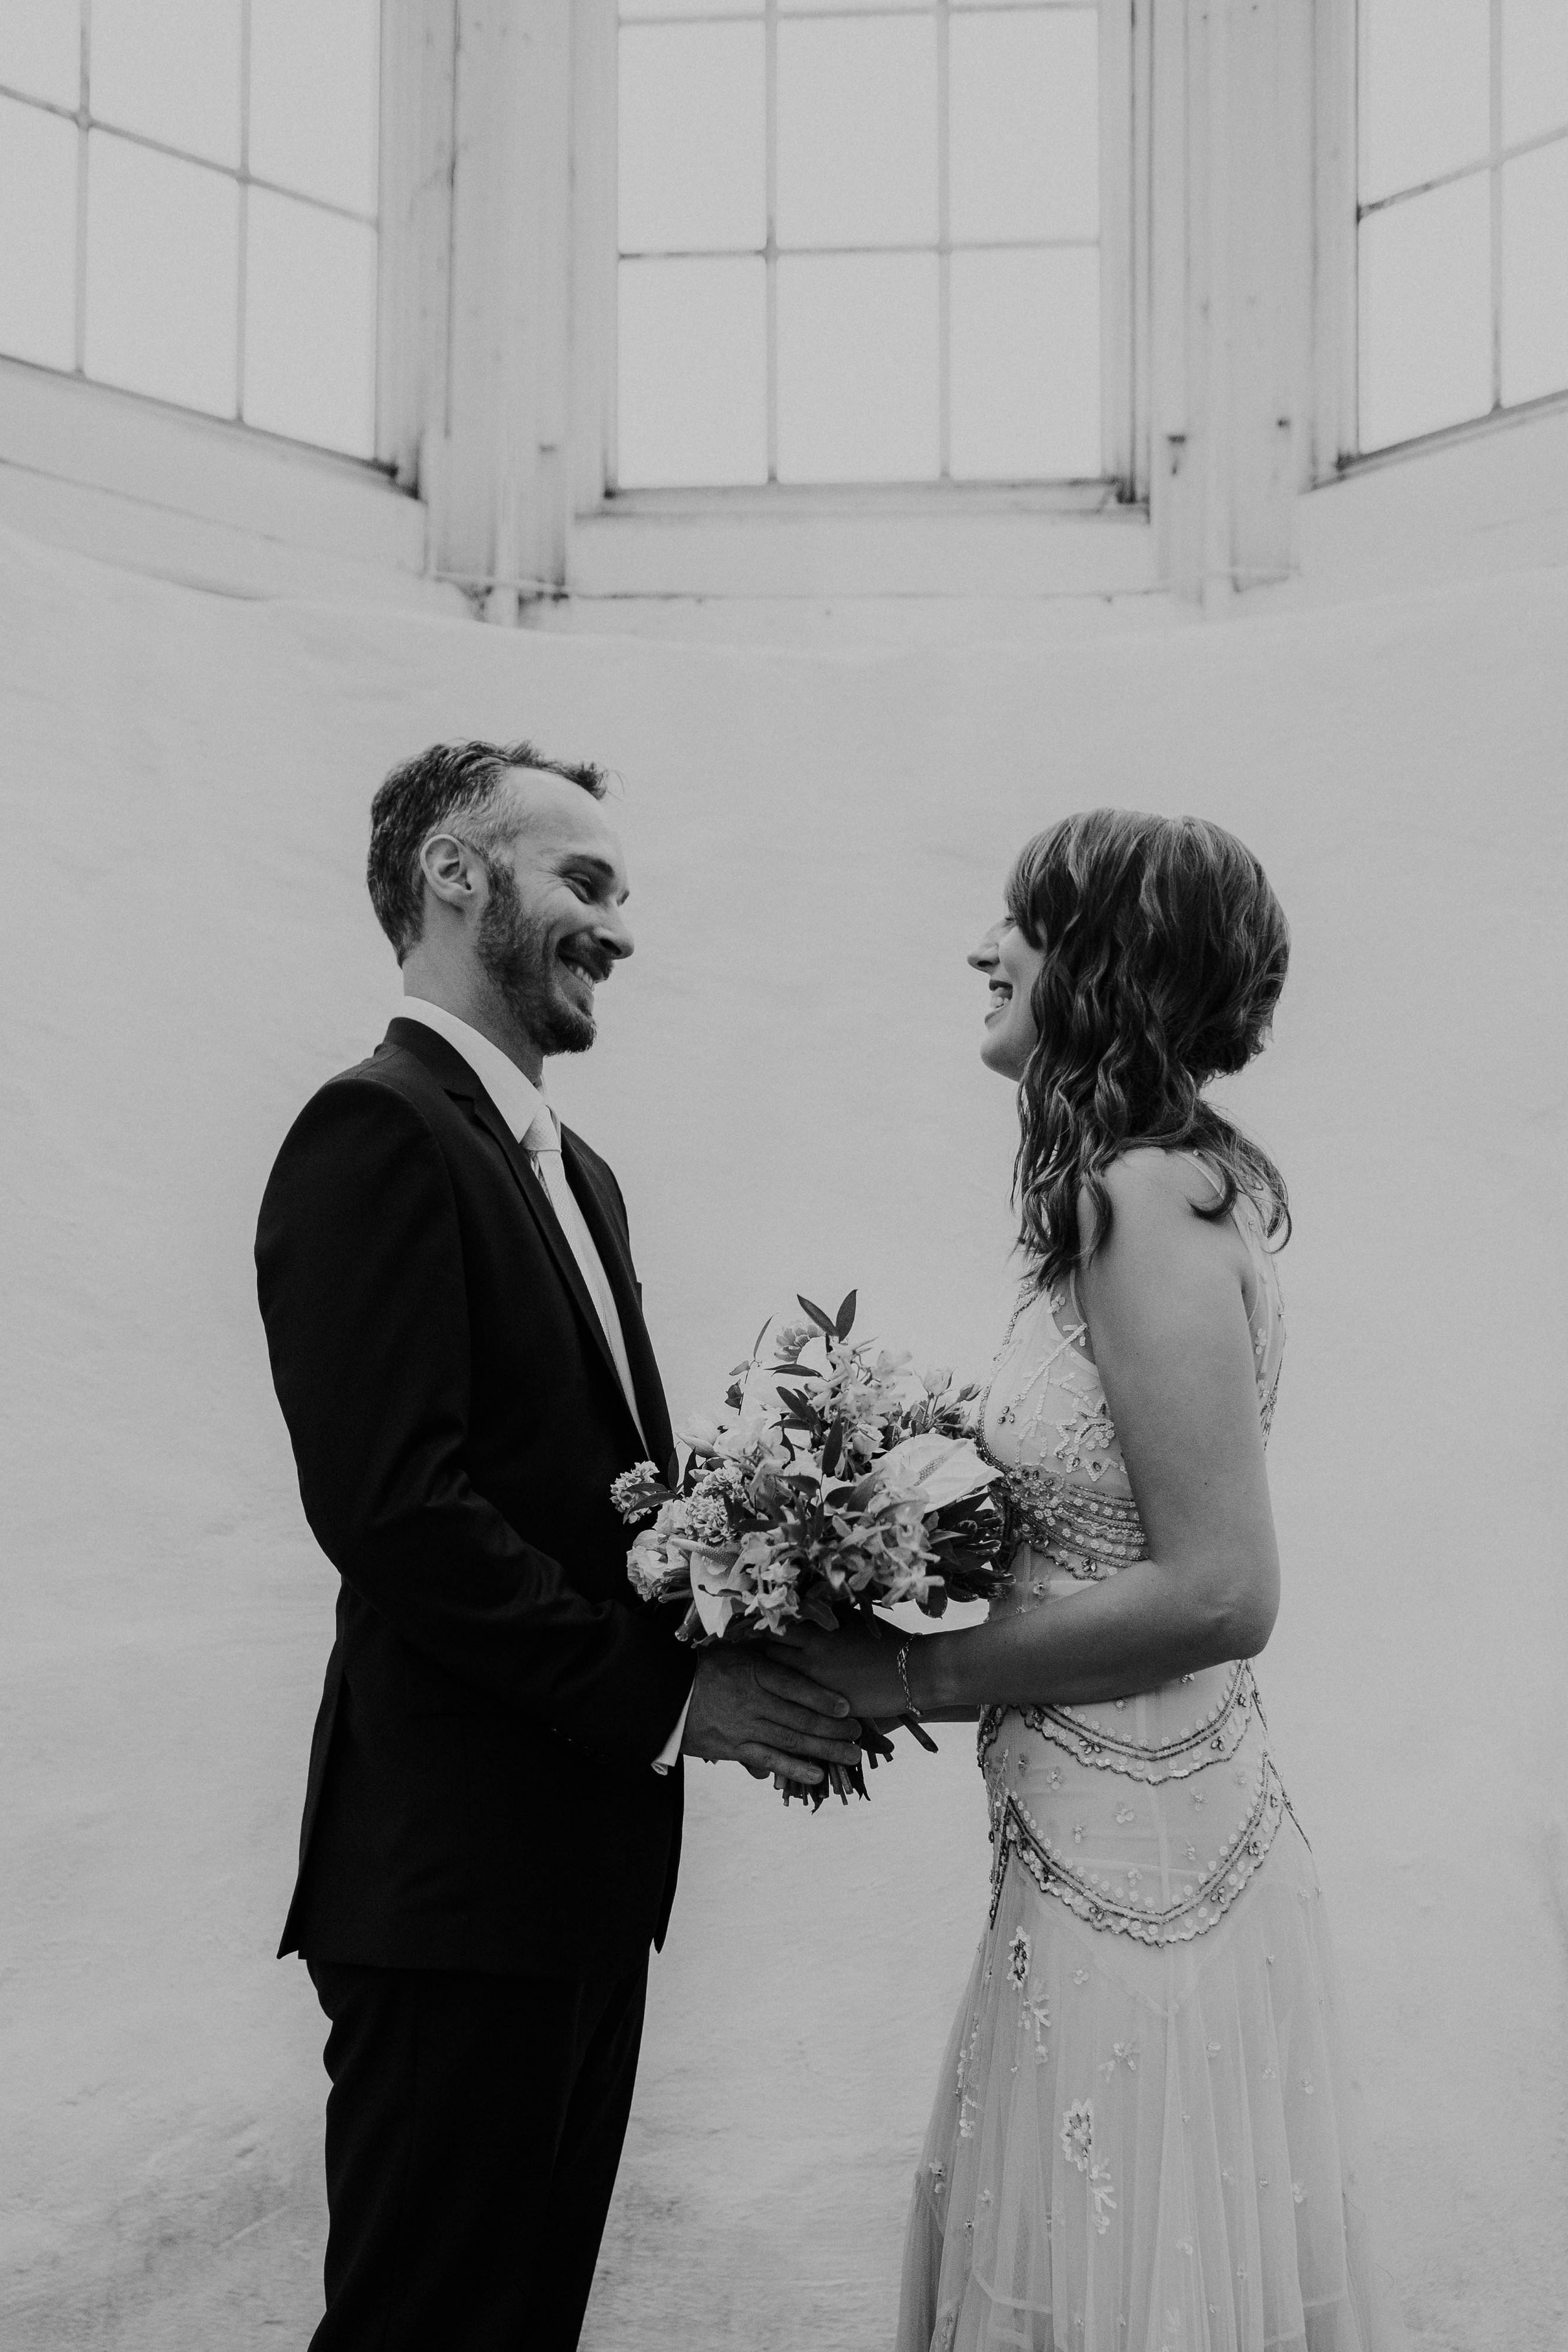 franklin park conservatory wedding columbus ohio wedding photographer grace e jones photography46.jpg